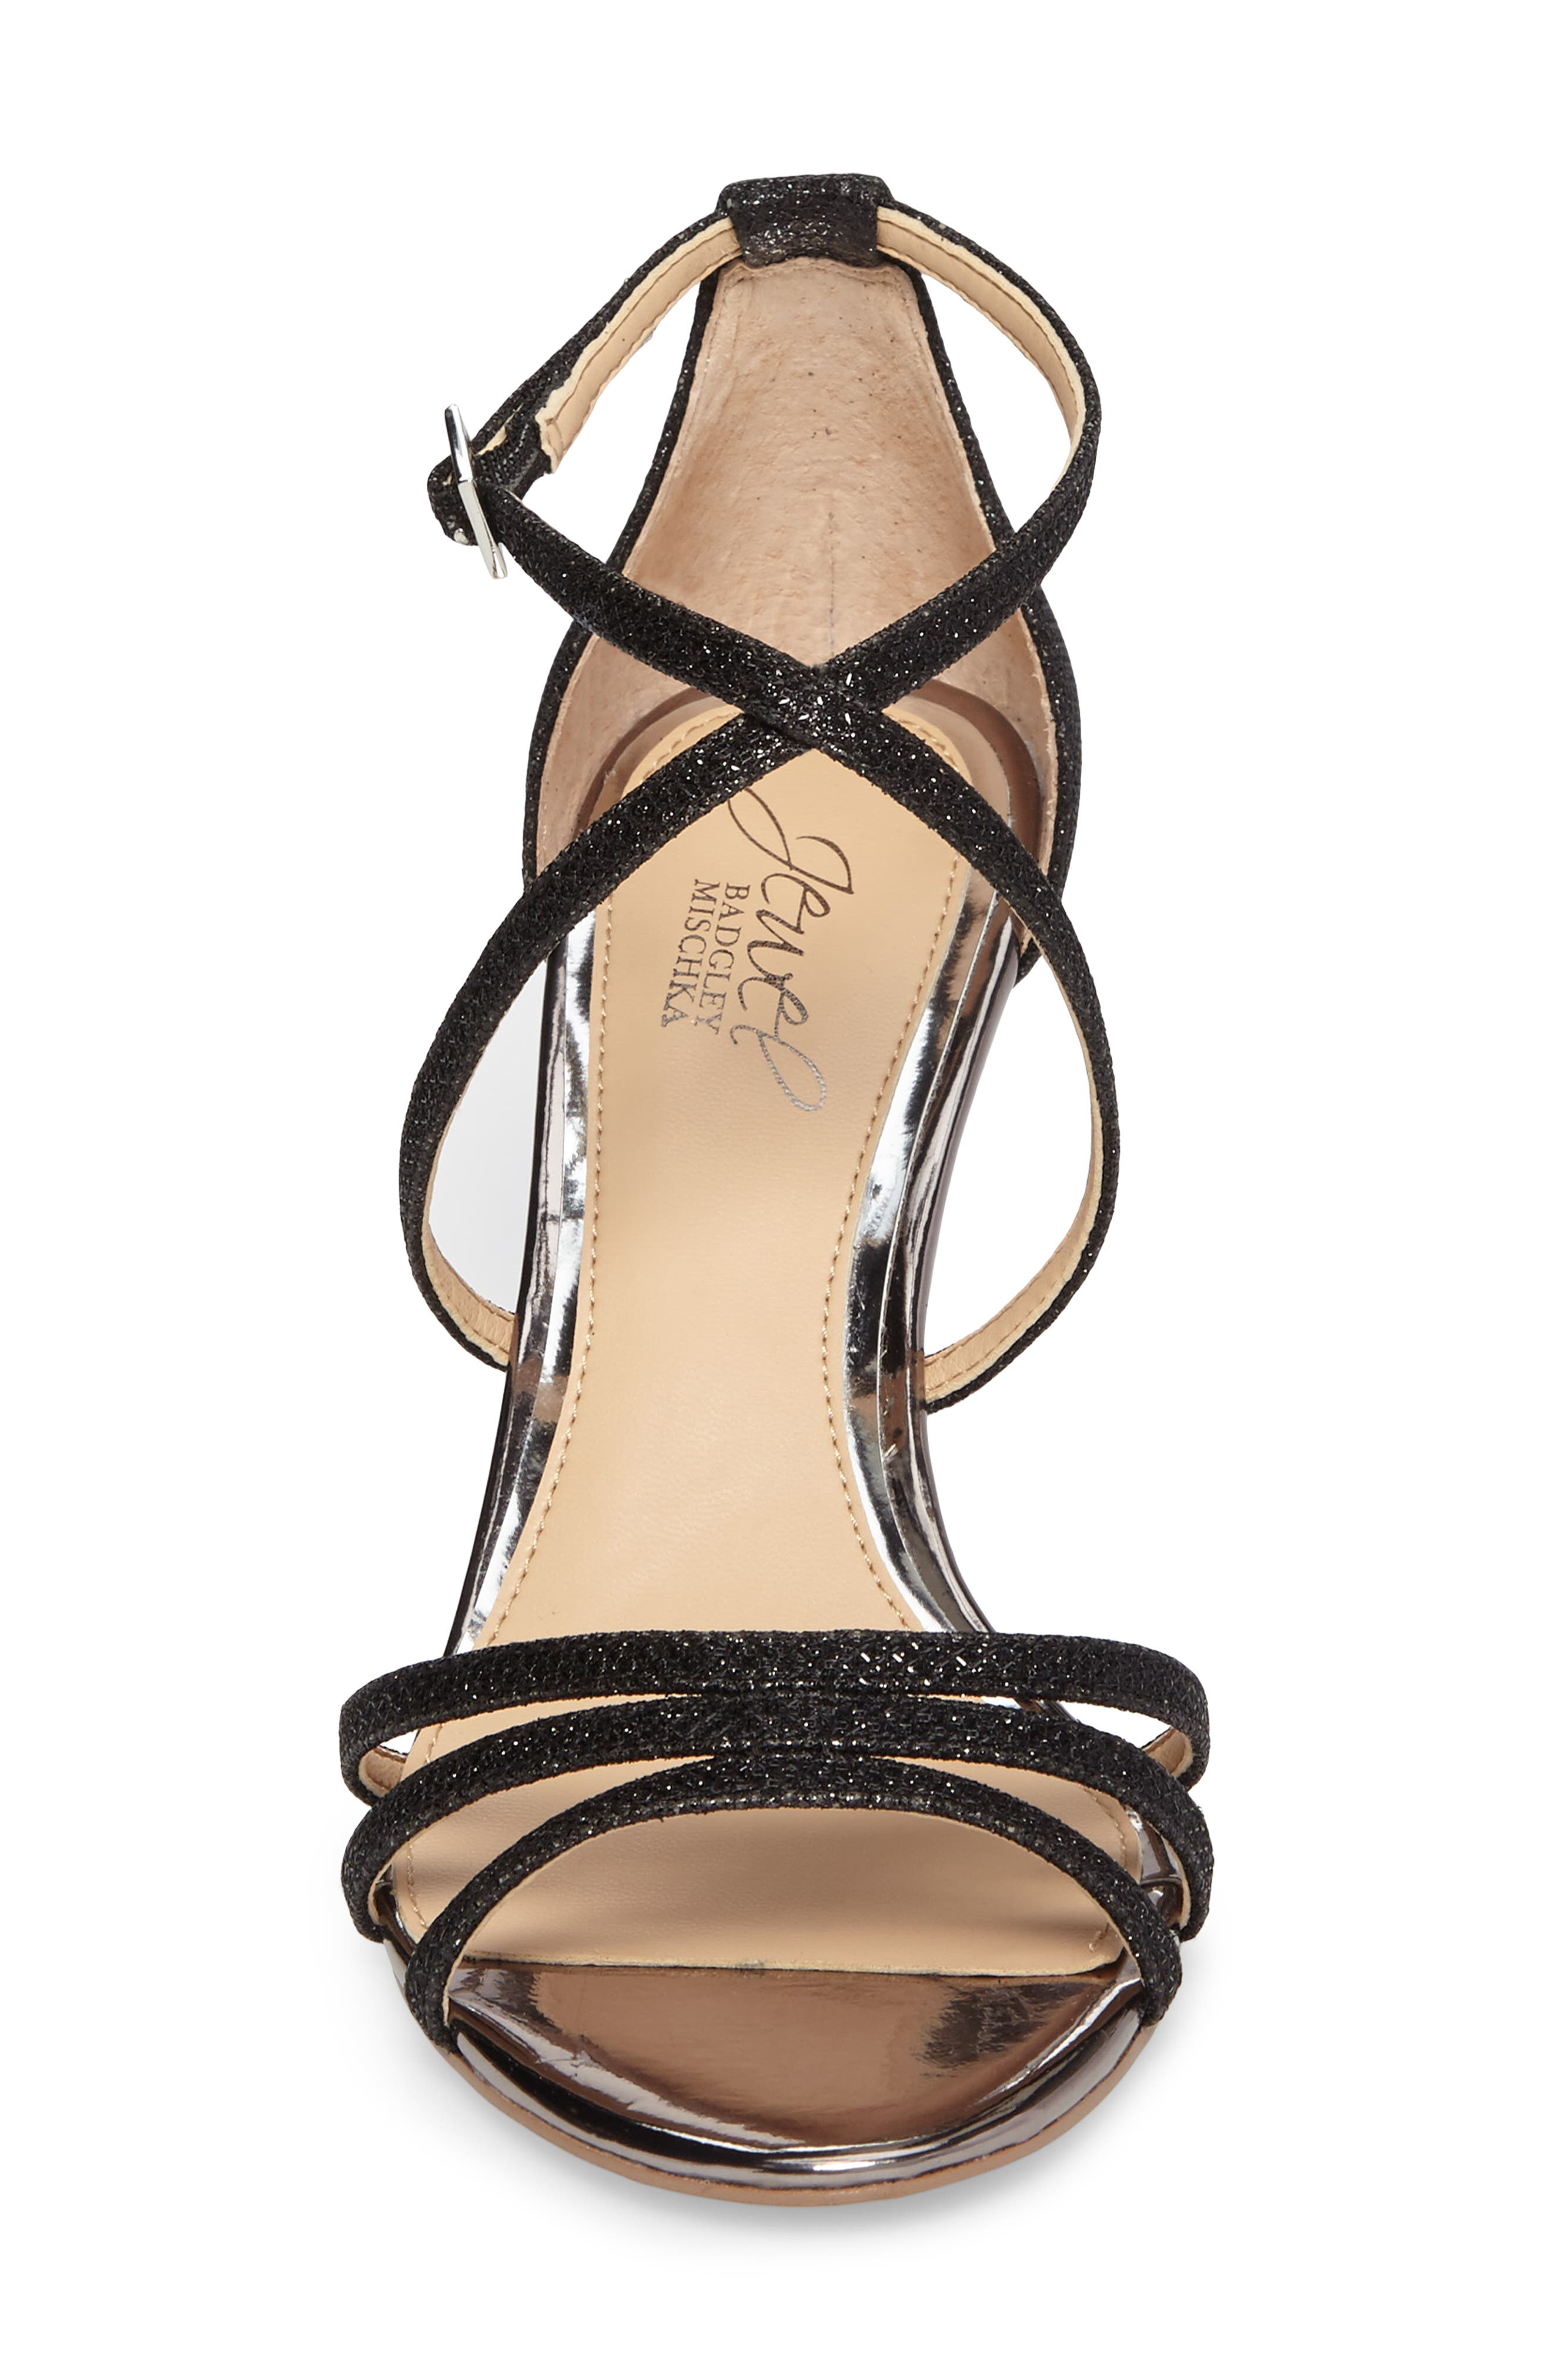 Jewel Badgley Mischka Hunt Glittery Wedge Sandal Women